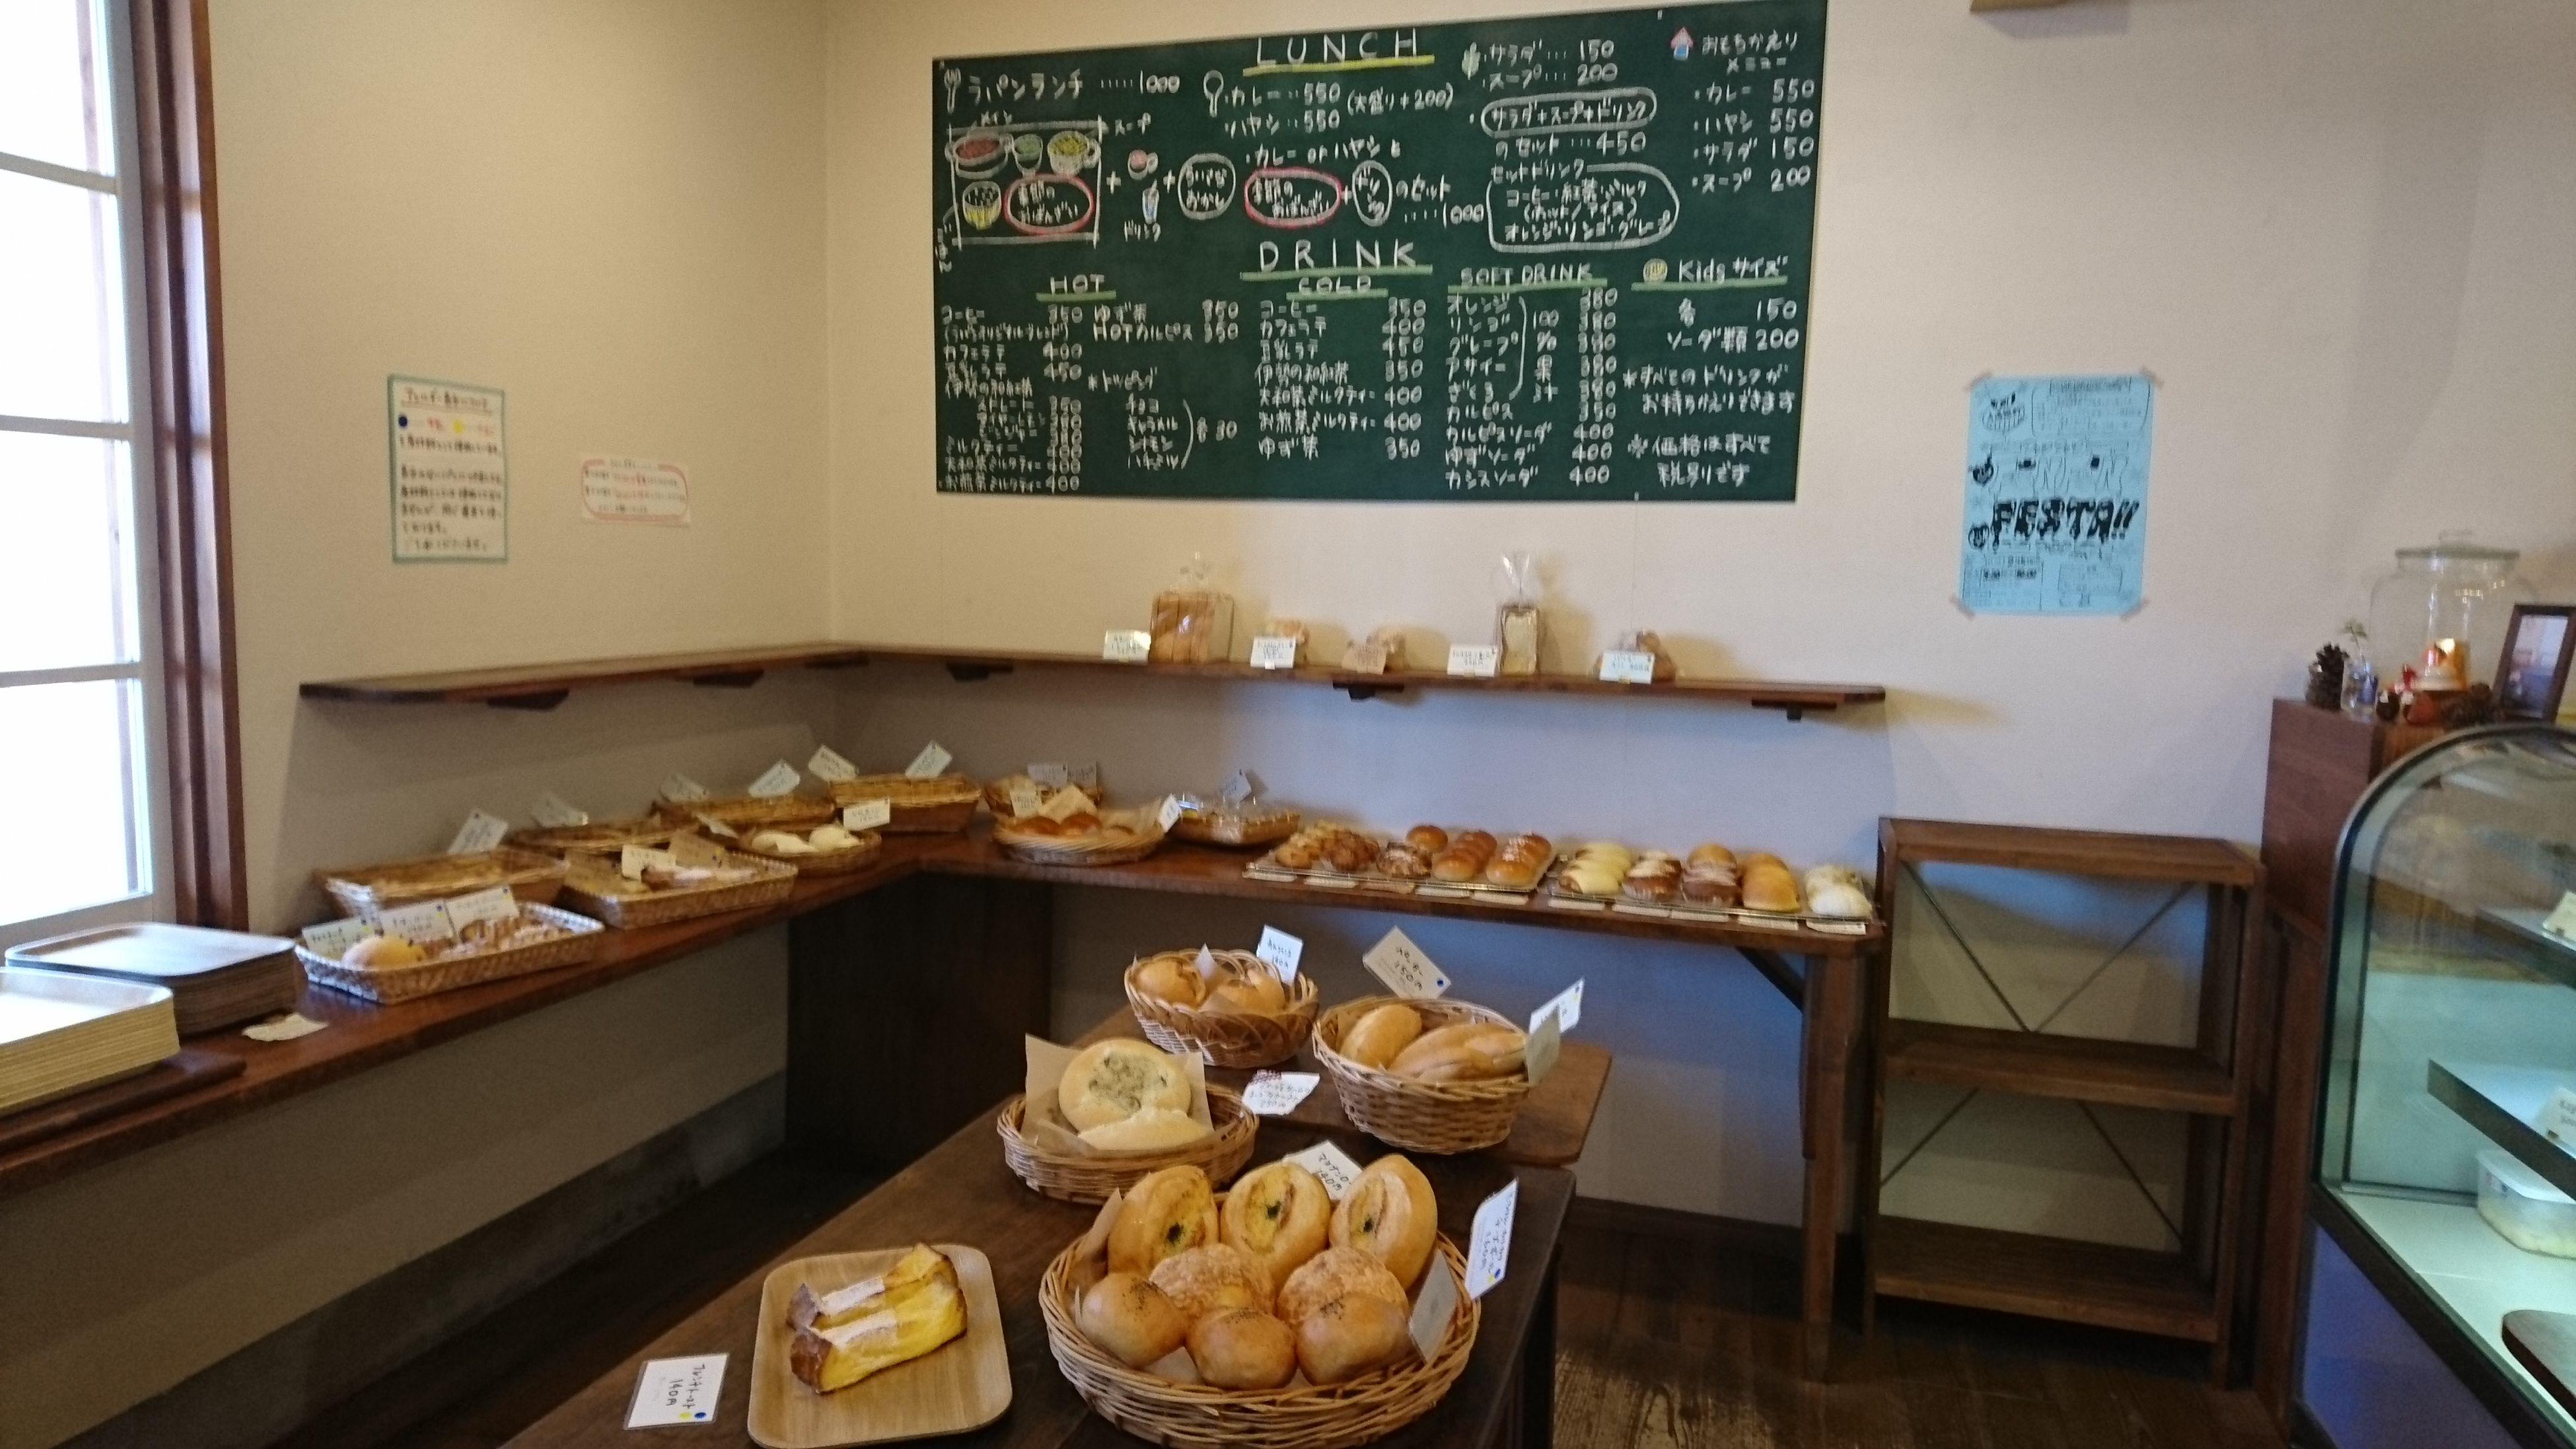 bakery, cafe, indoors, food and drink, no people, food and drink industry, blackboard, cakestand, text, food, occupation, day